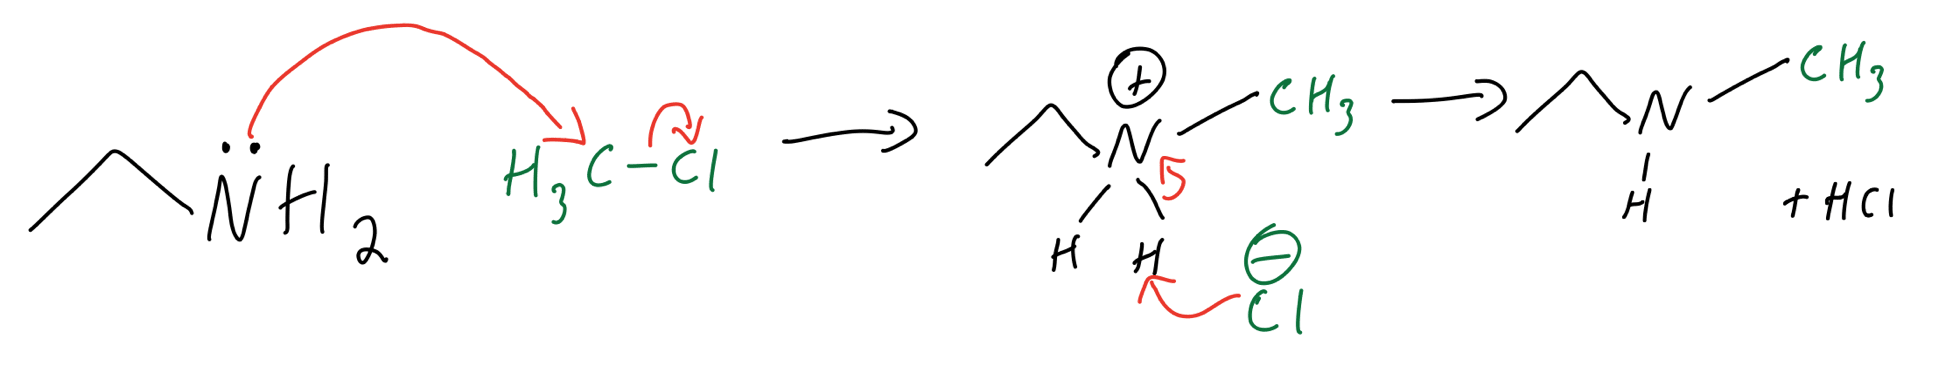 Ethylamine and chloromethane substitution reaction